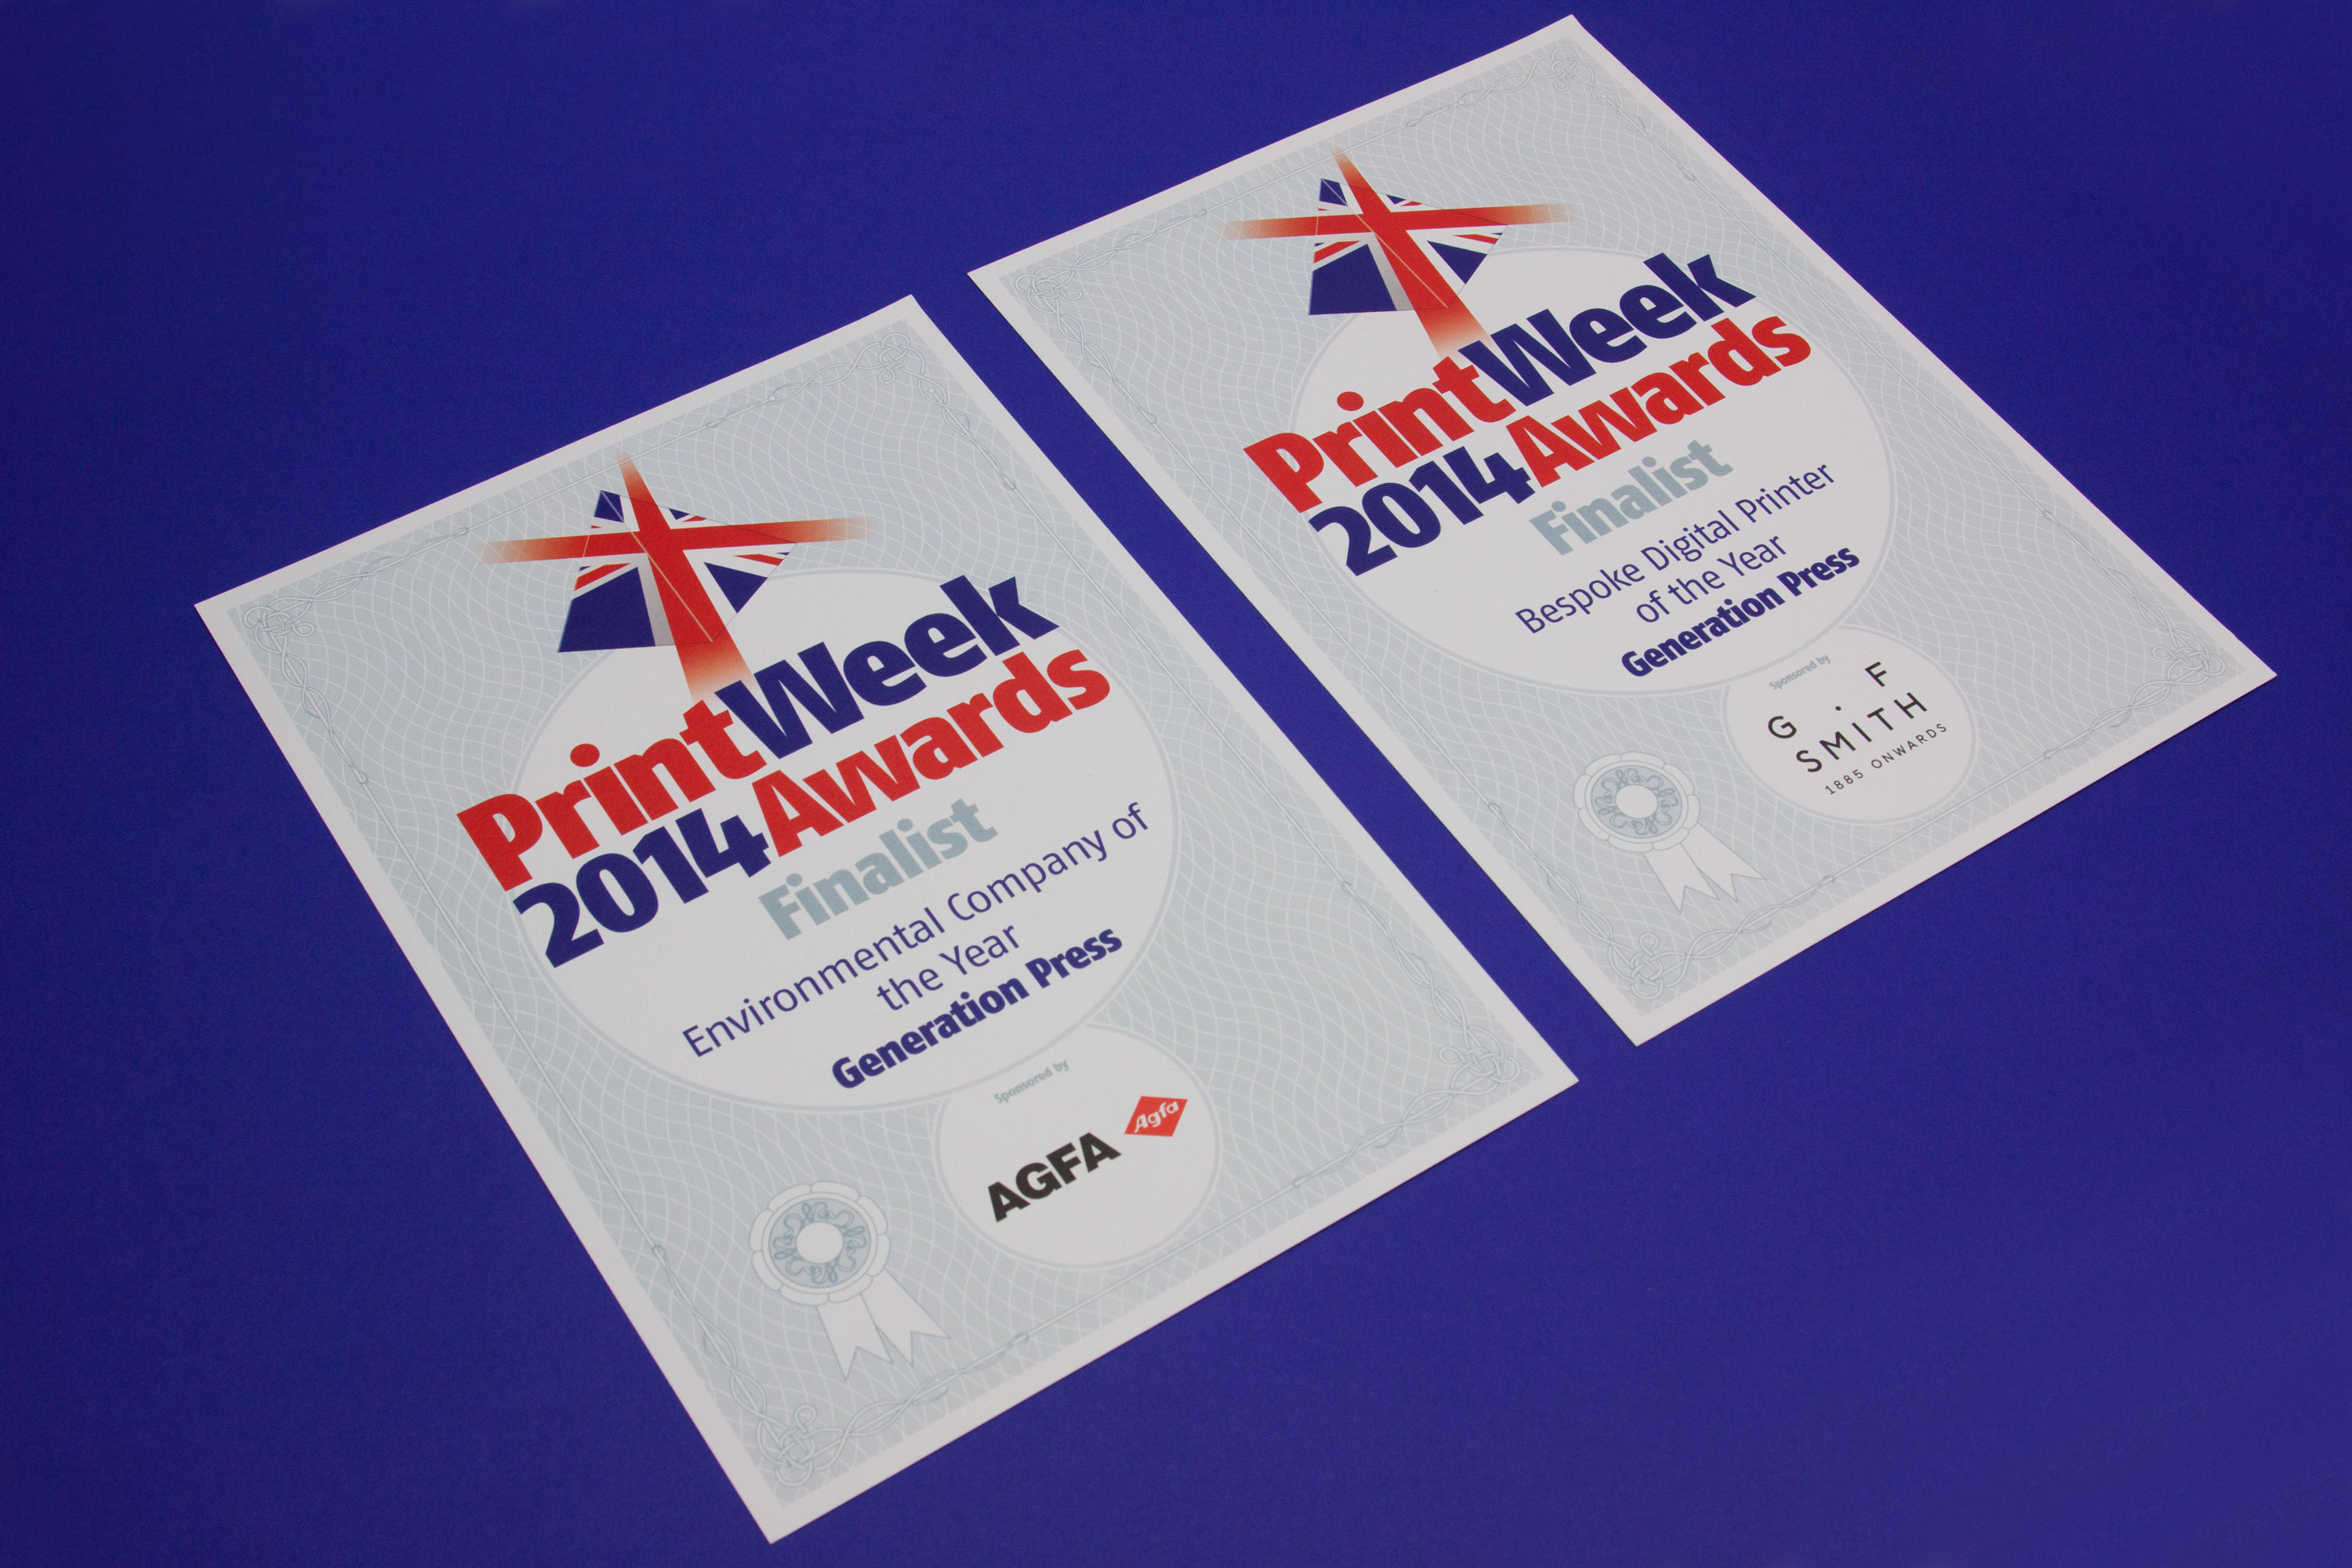 GP_PRINT_WEEK_AWARDS_0